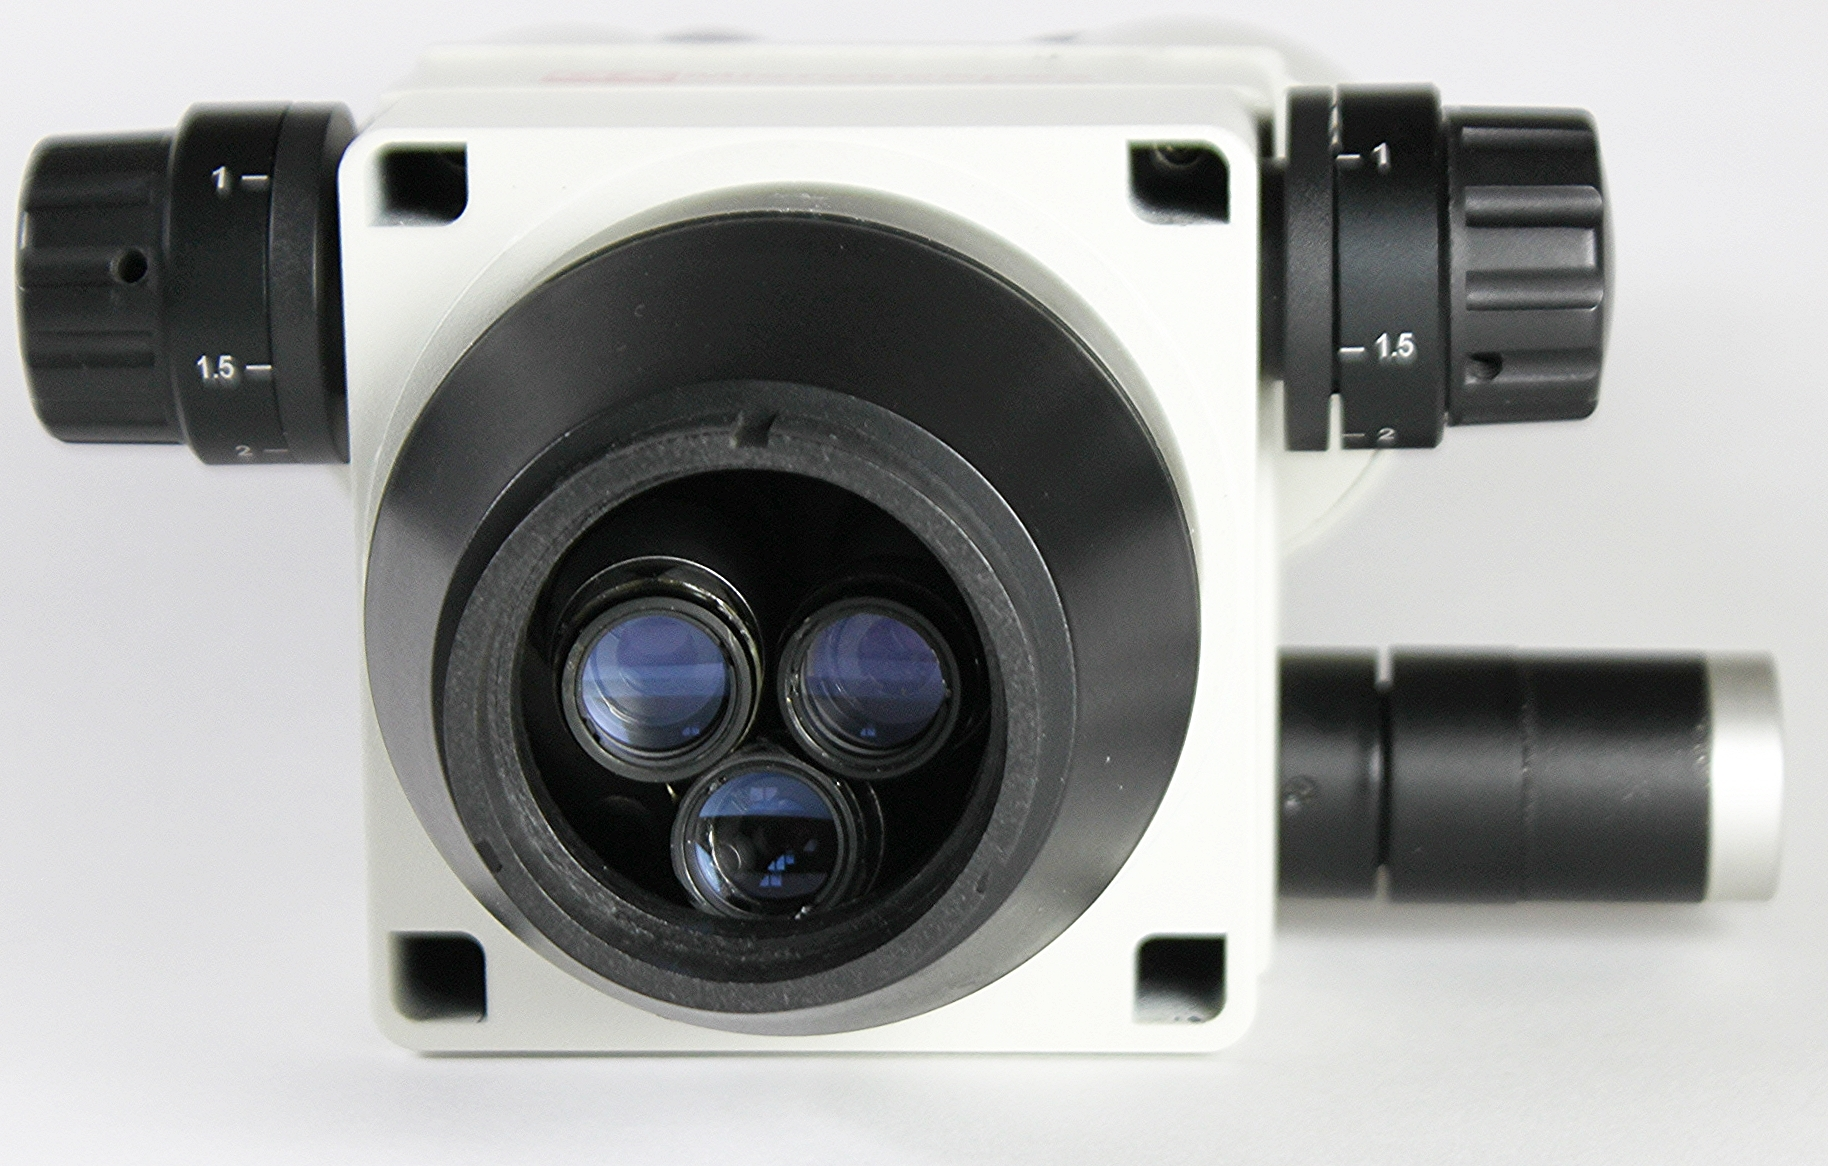 ID 1043 XTL-AXIAL ZOOM STEREO MICROSCOPE